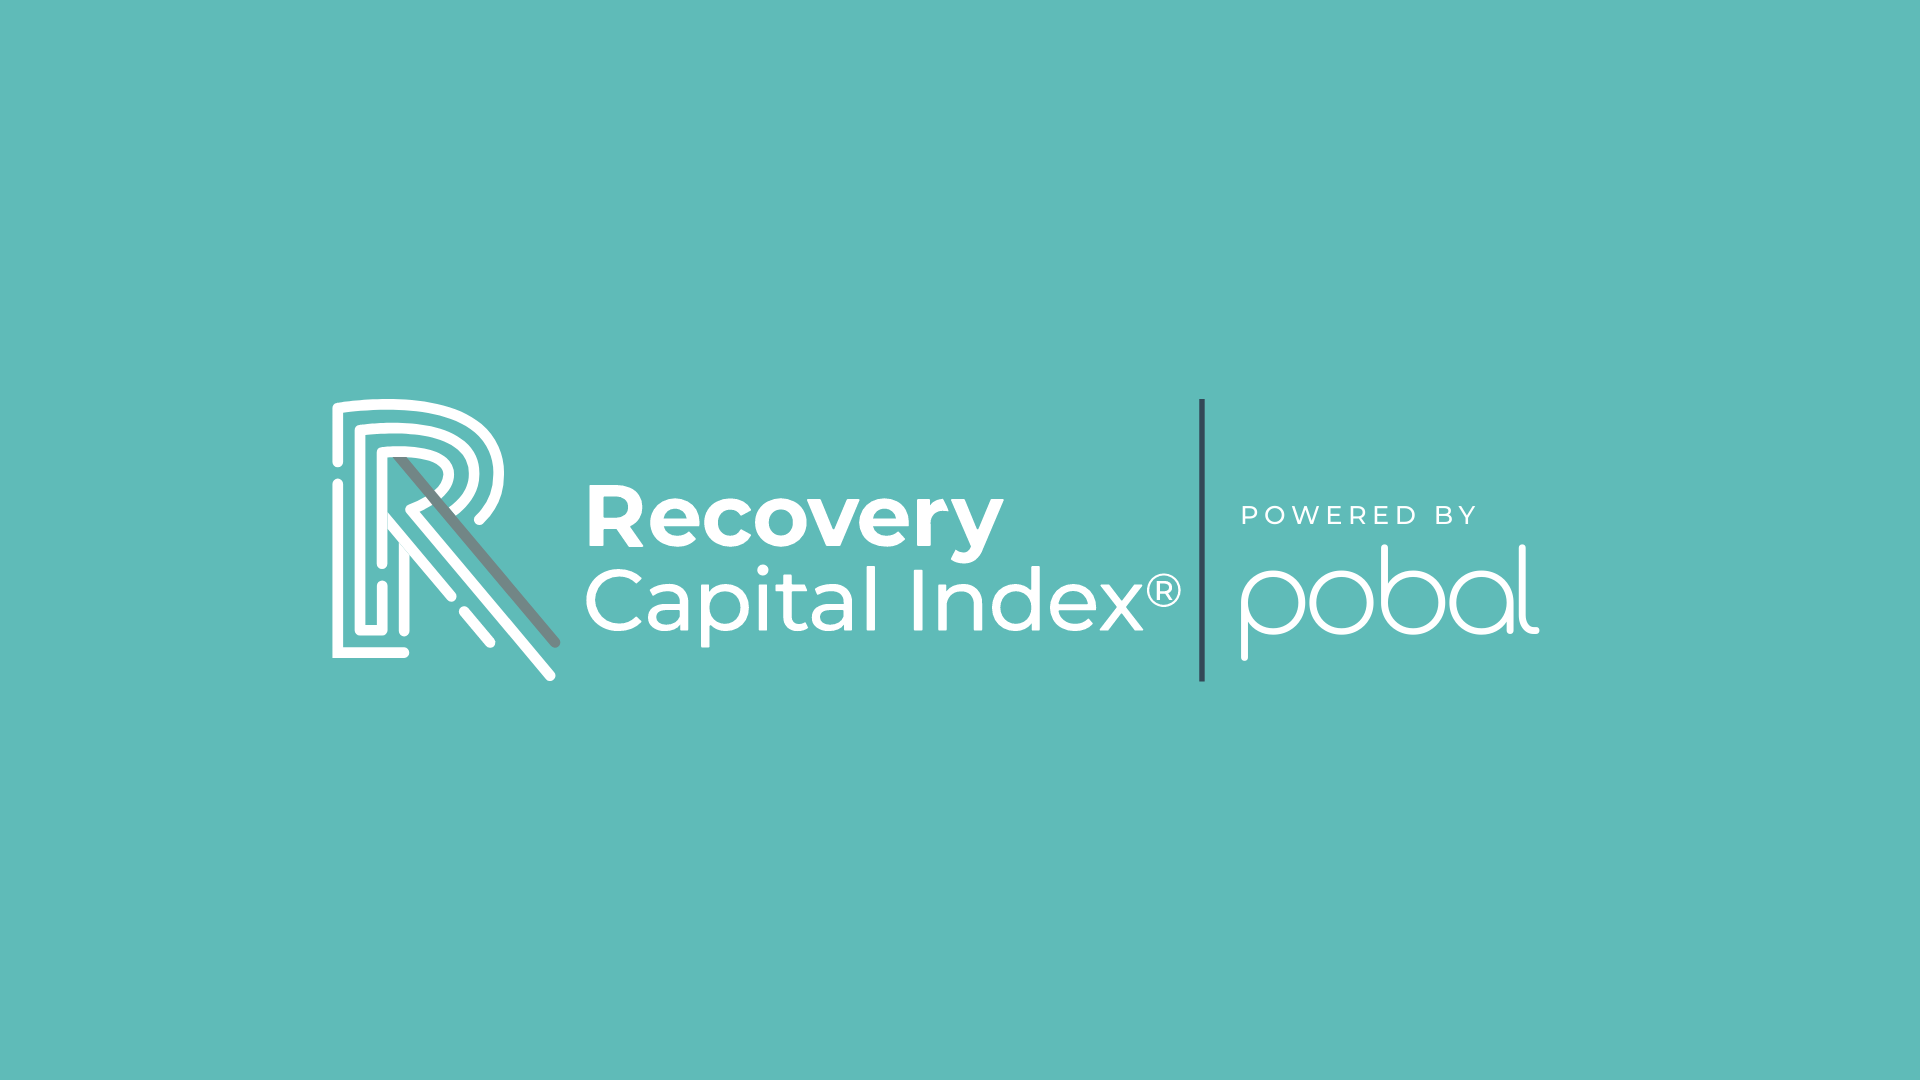 Recovery Capital Index RCI powered by pobal logo (3)